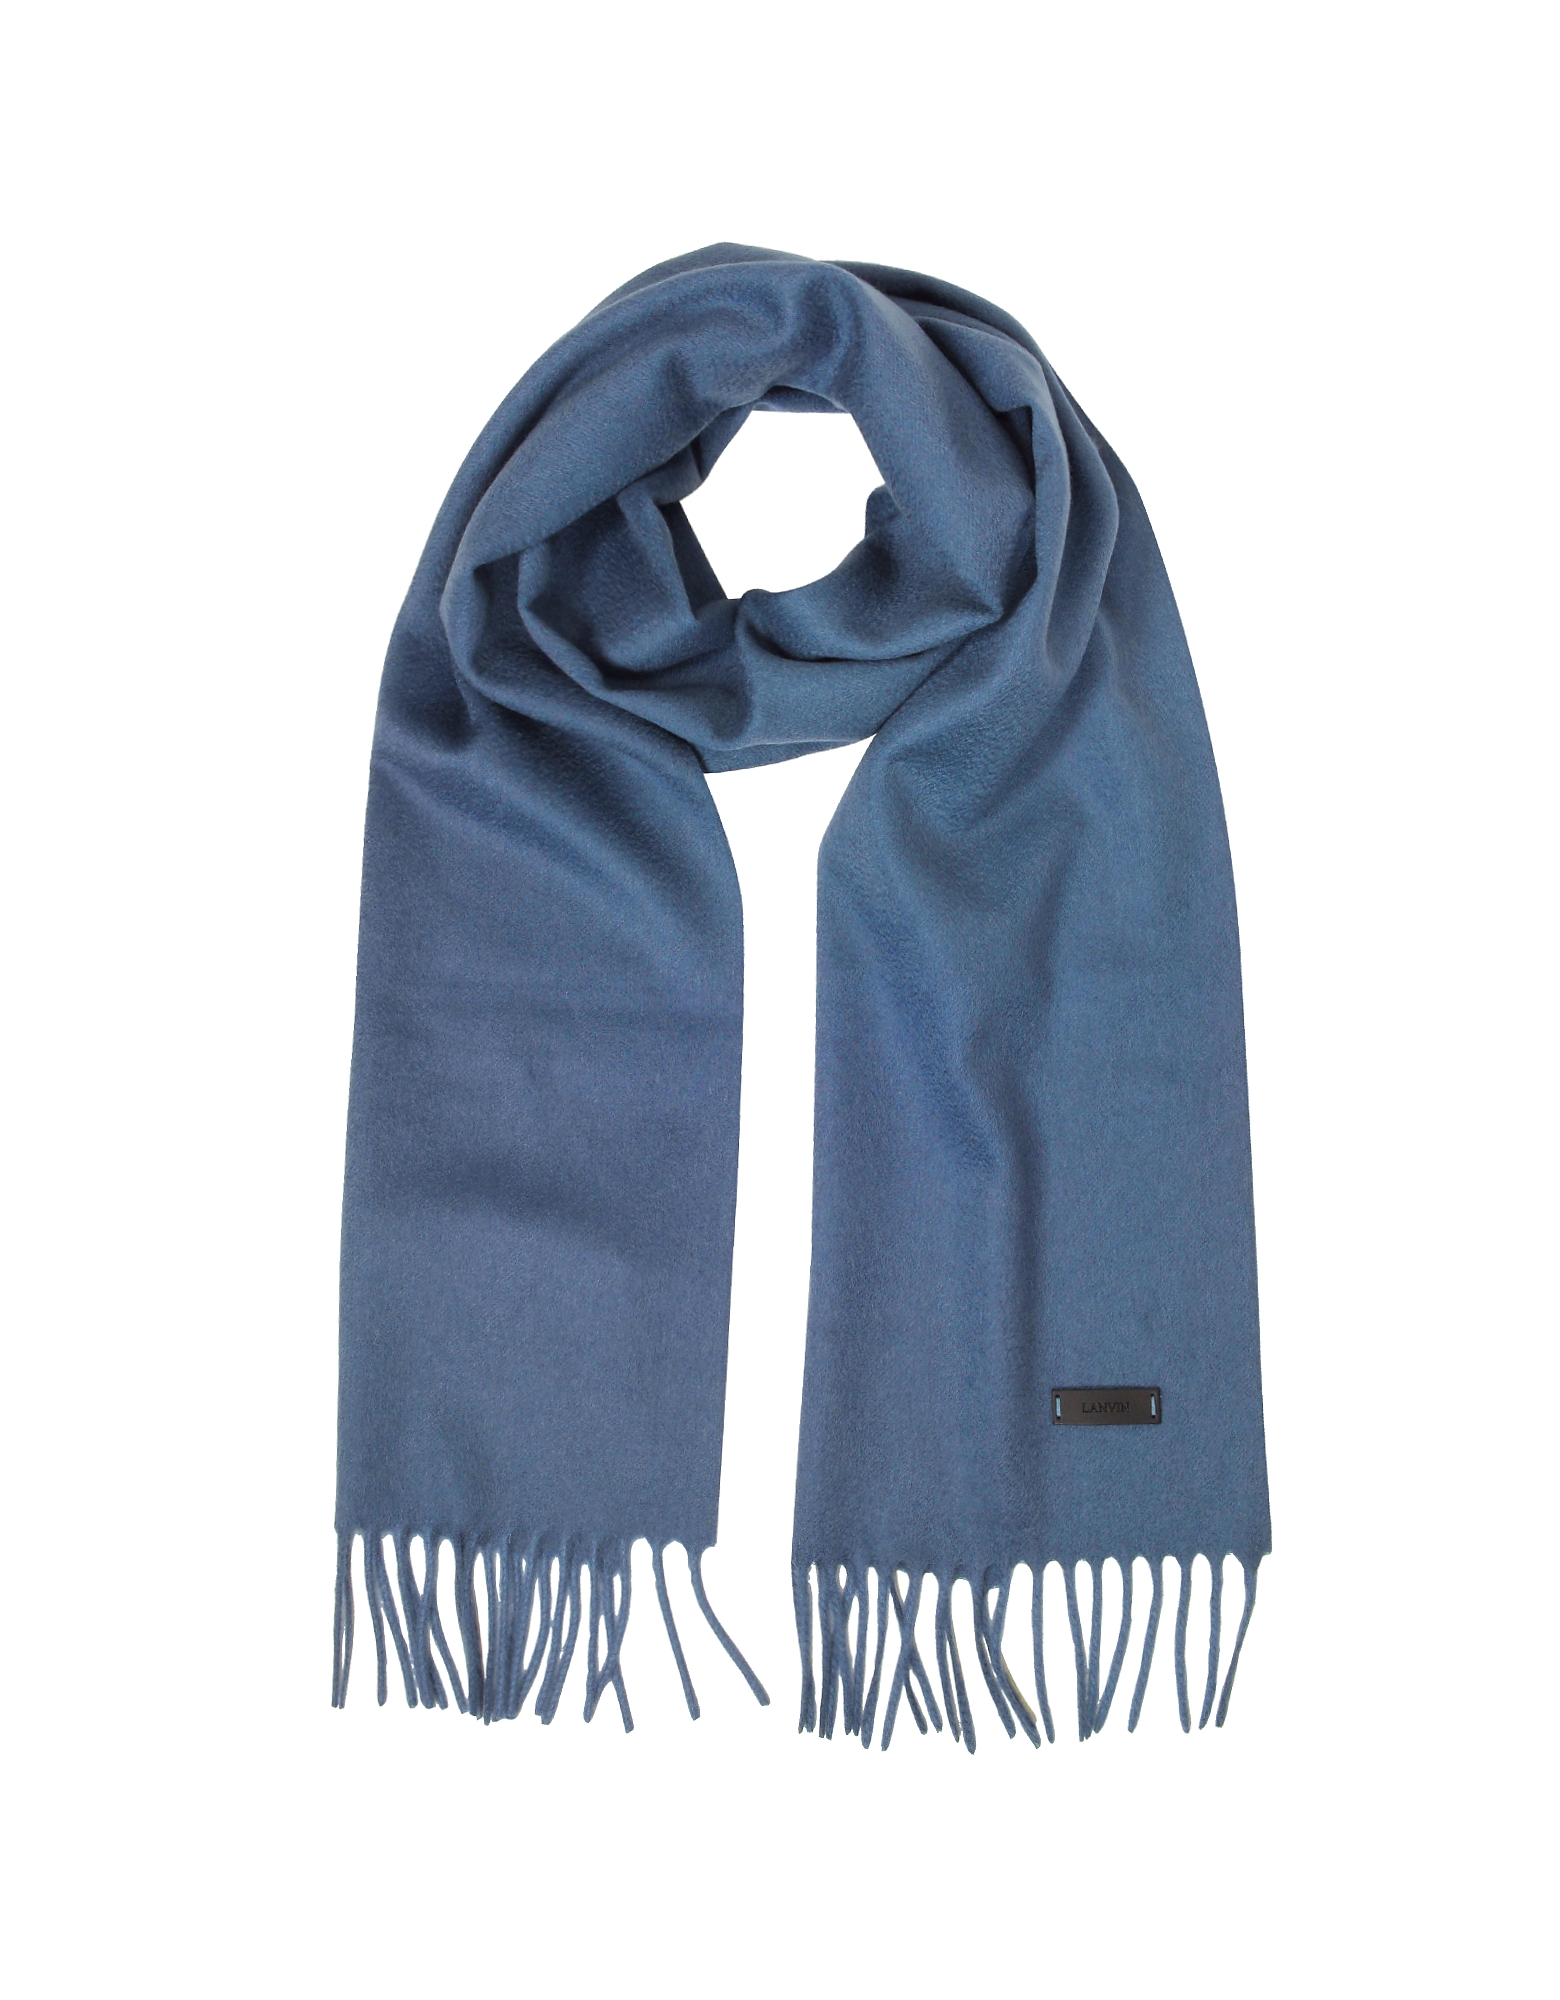 Lanvin Men's Scarves, Solid Wool Long Scarf w/Fringes